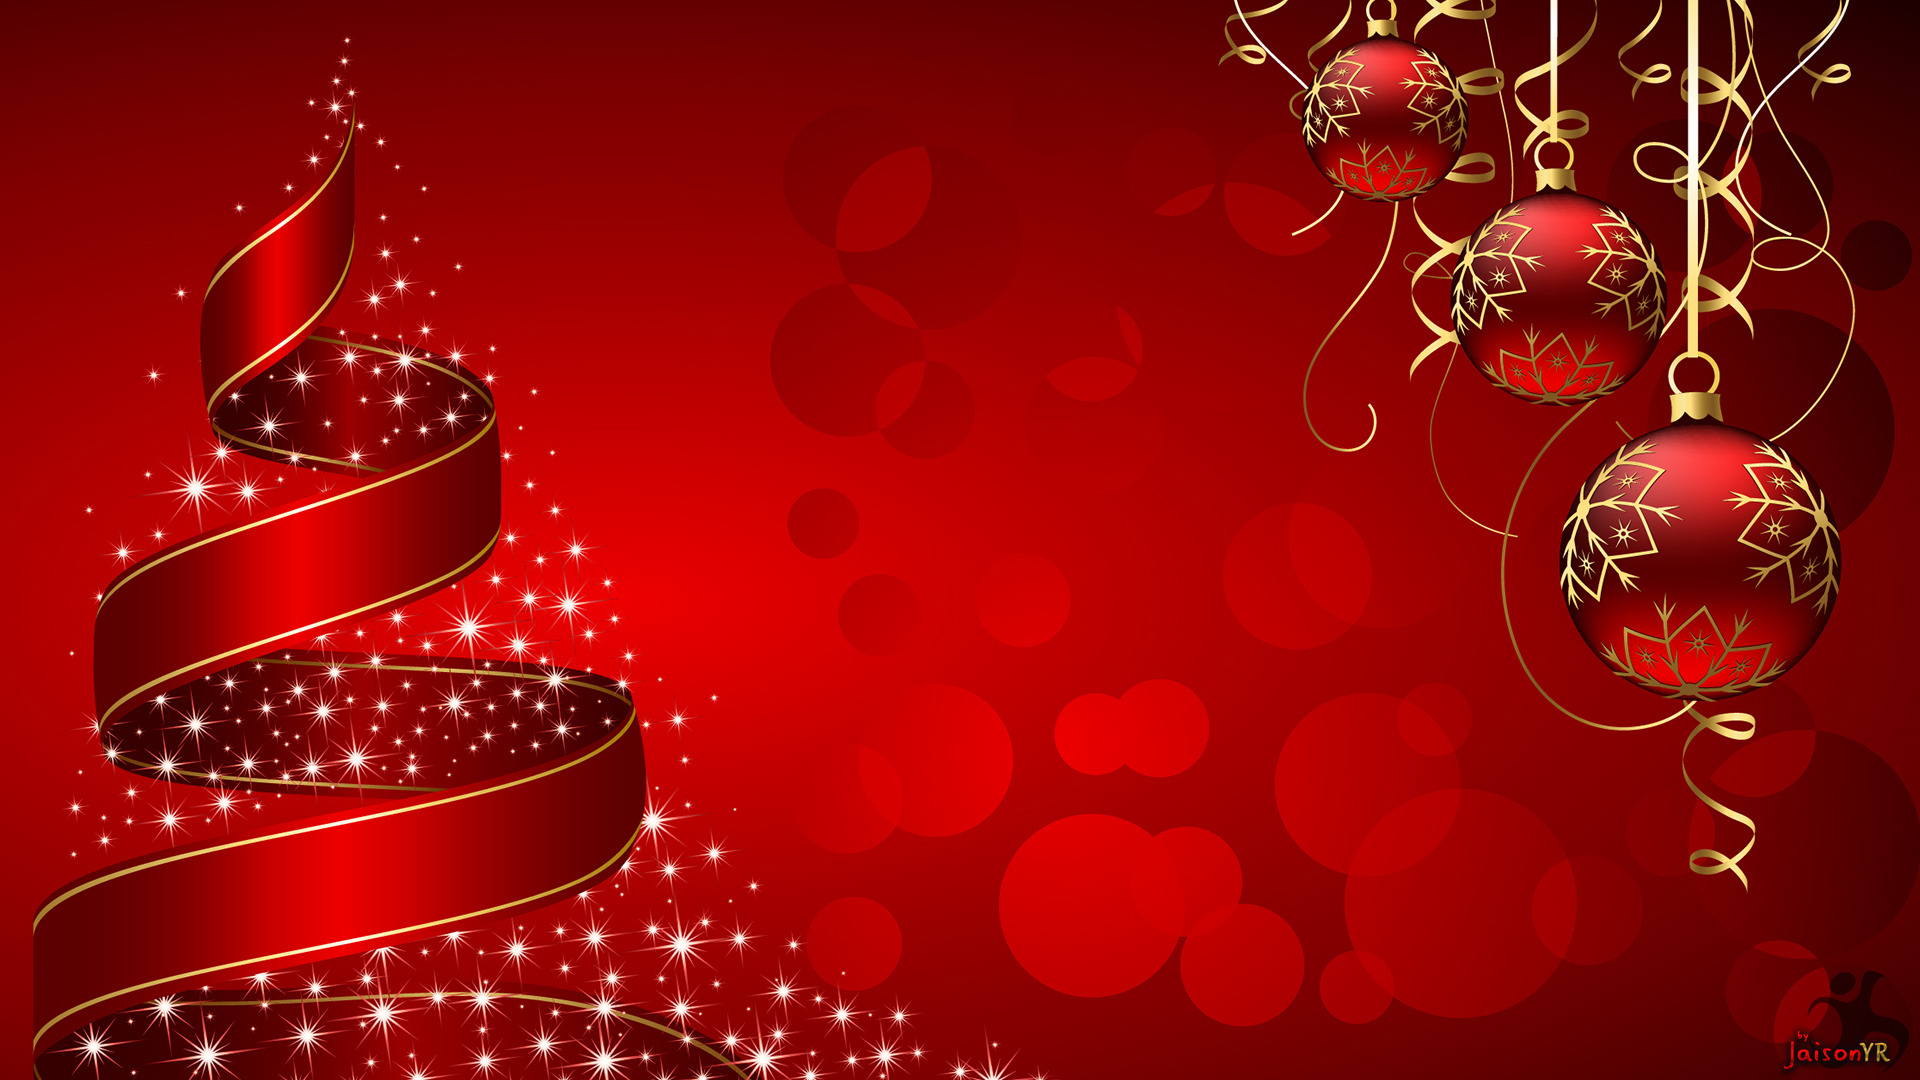 christmas_tree_wallpaper_by_jaisonyr-d5l5p6h.jpg